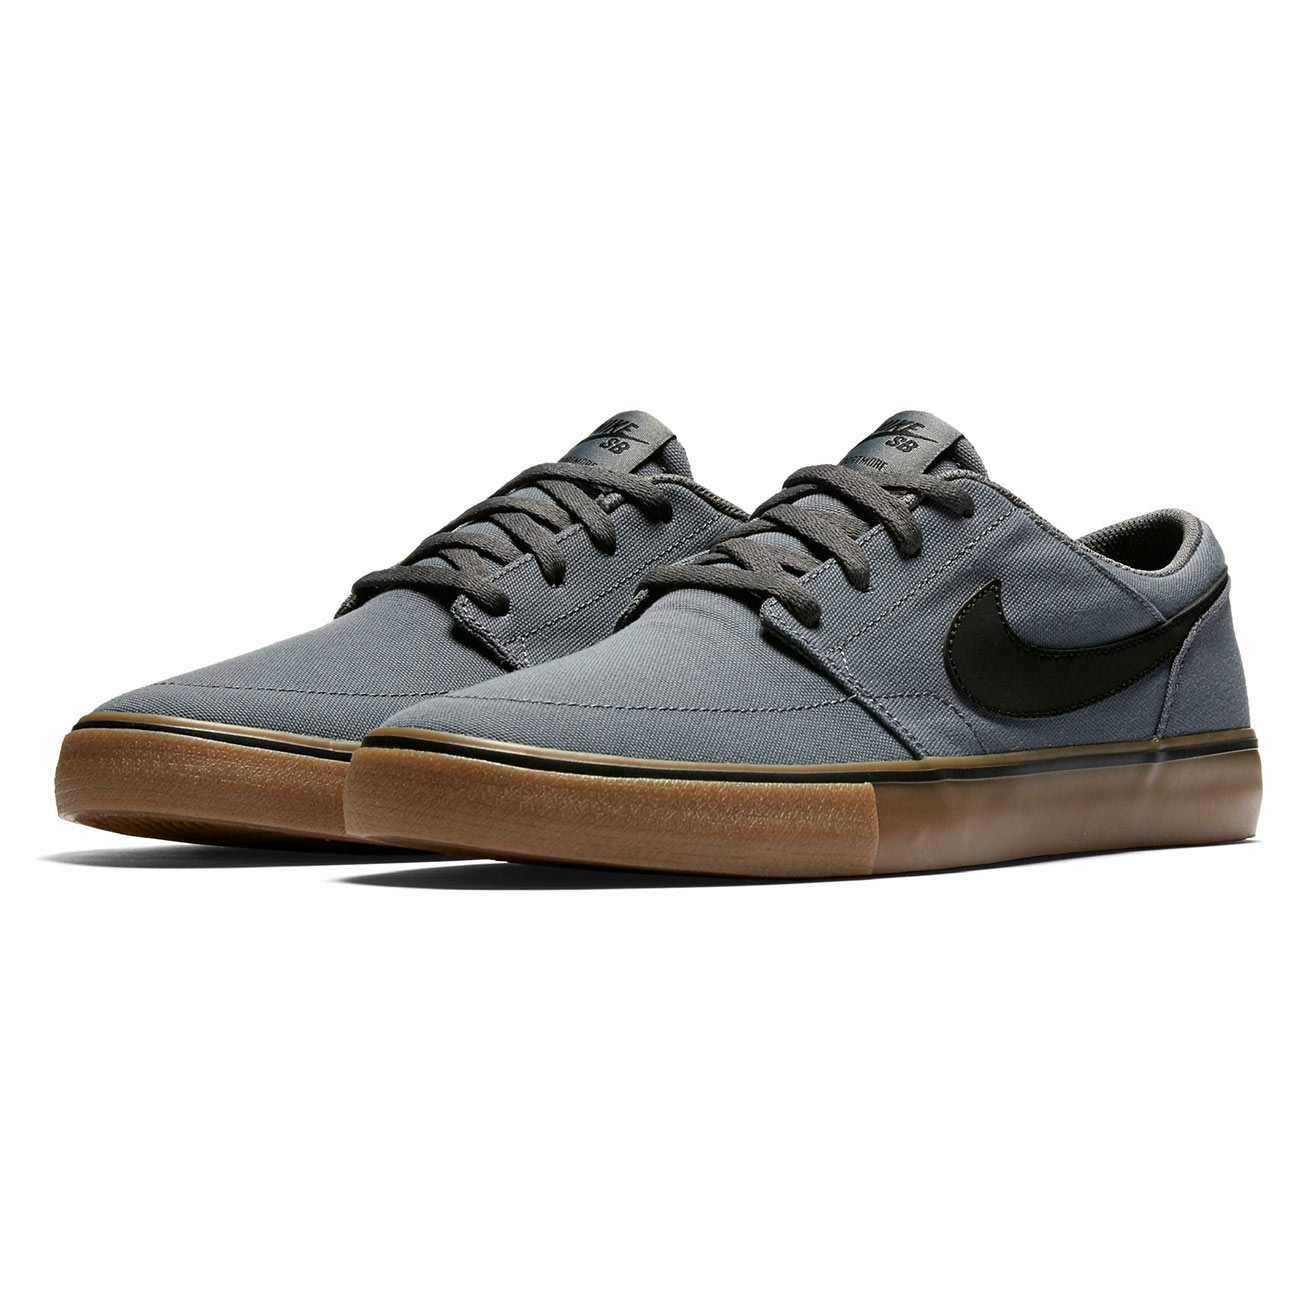 Nike Sb Portmore Ii Black Grey And Gum Skate Shoes